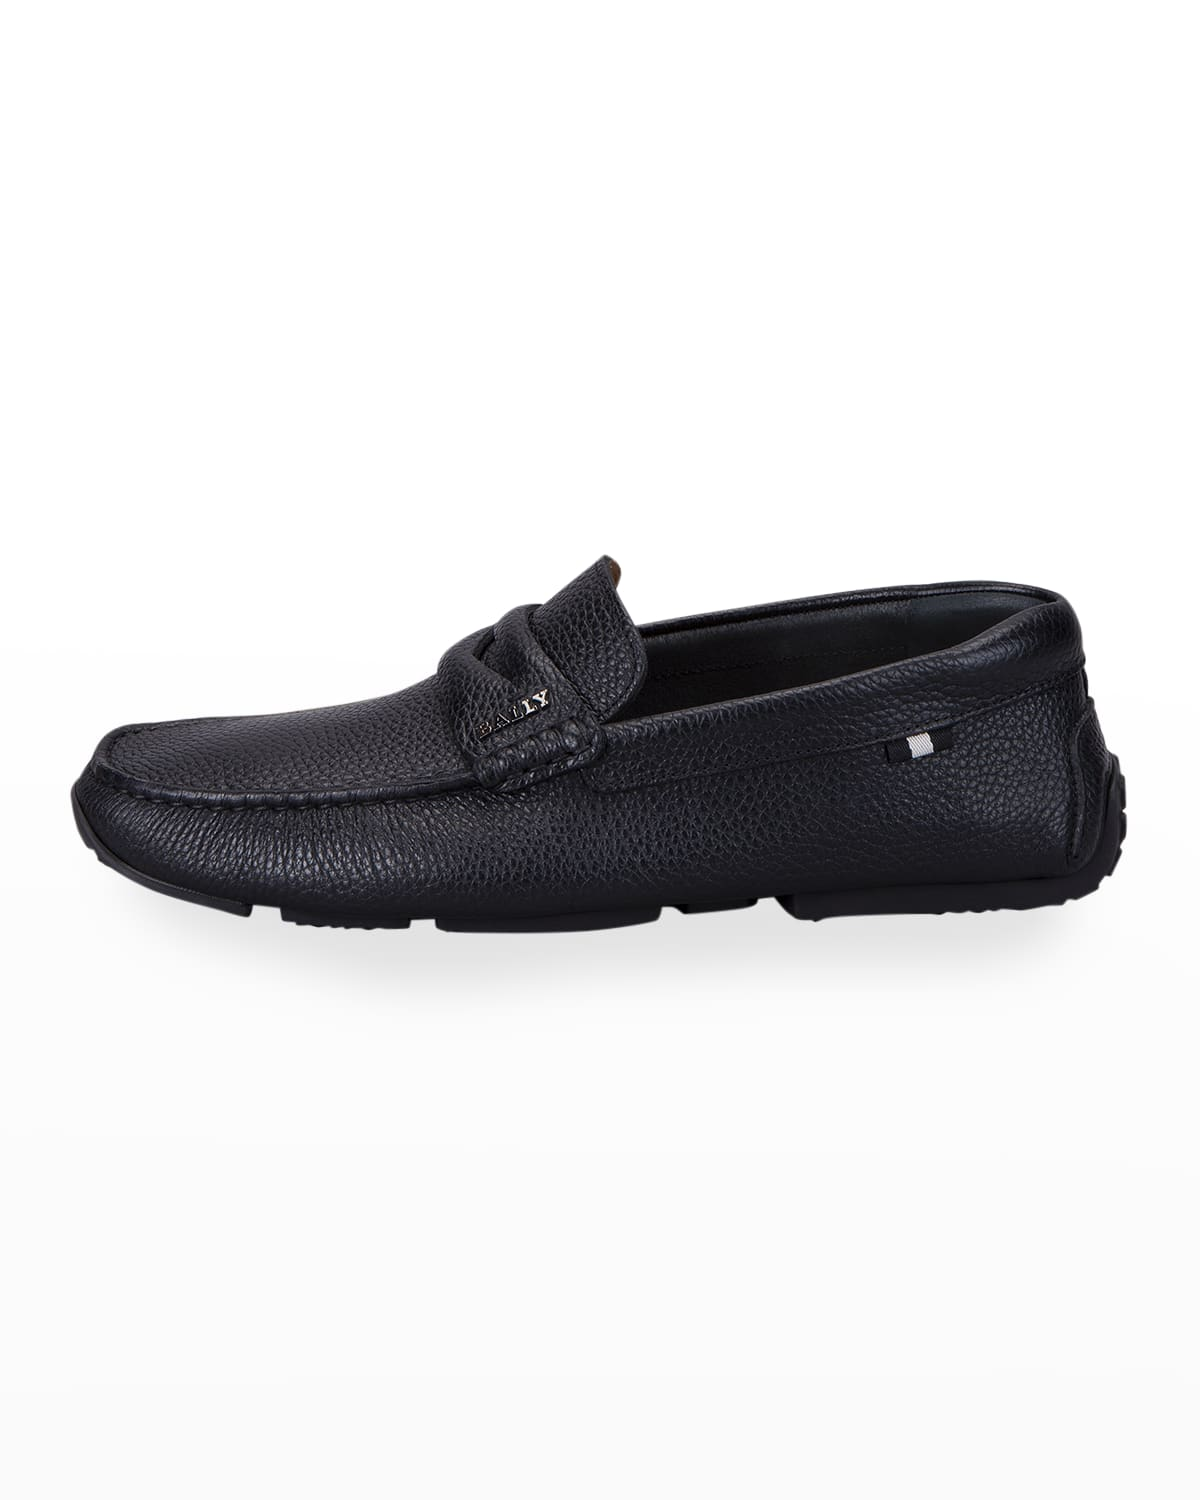 Men's Pavel Pebbled Leather Penny Loafers